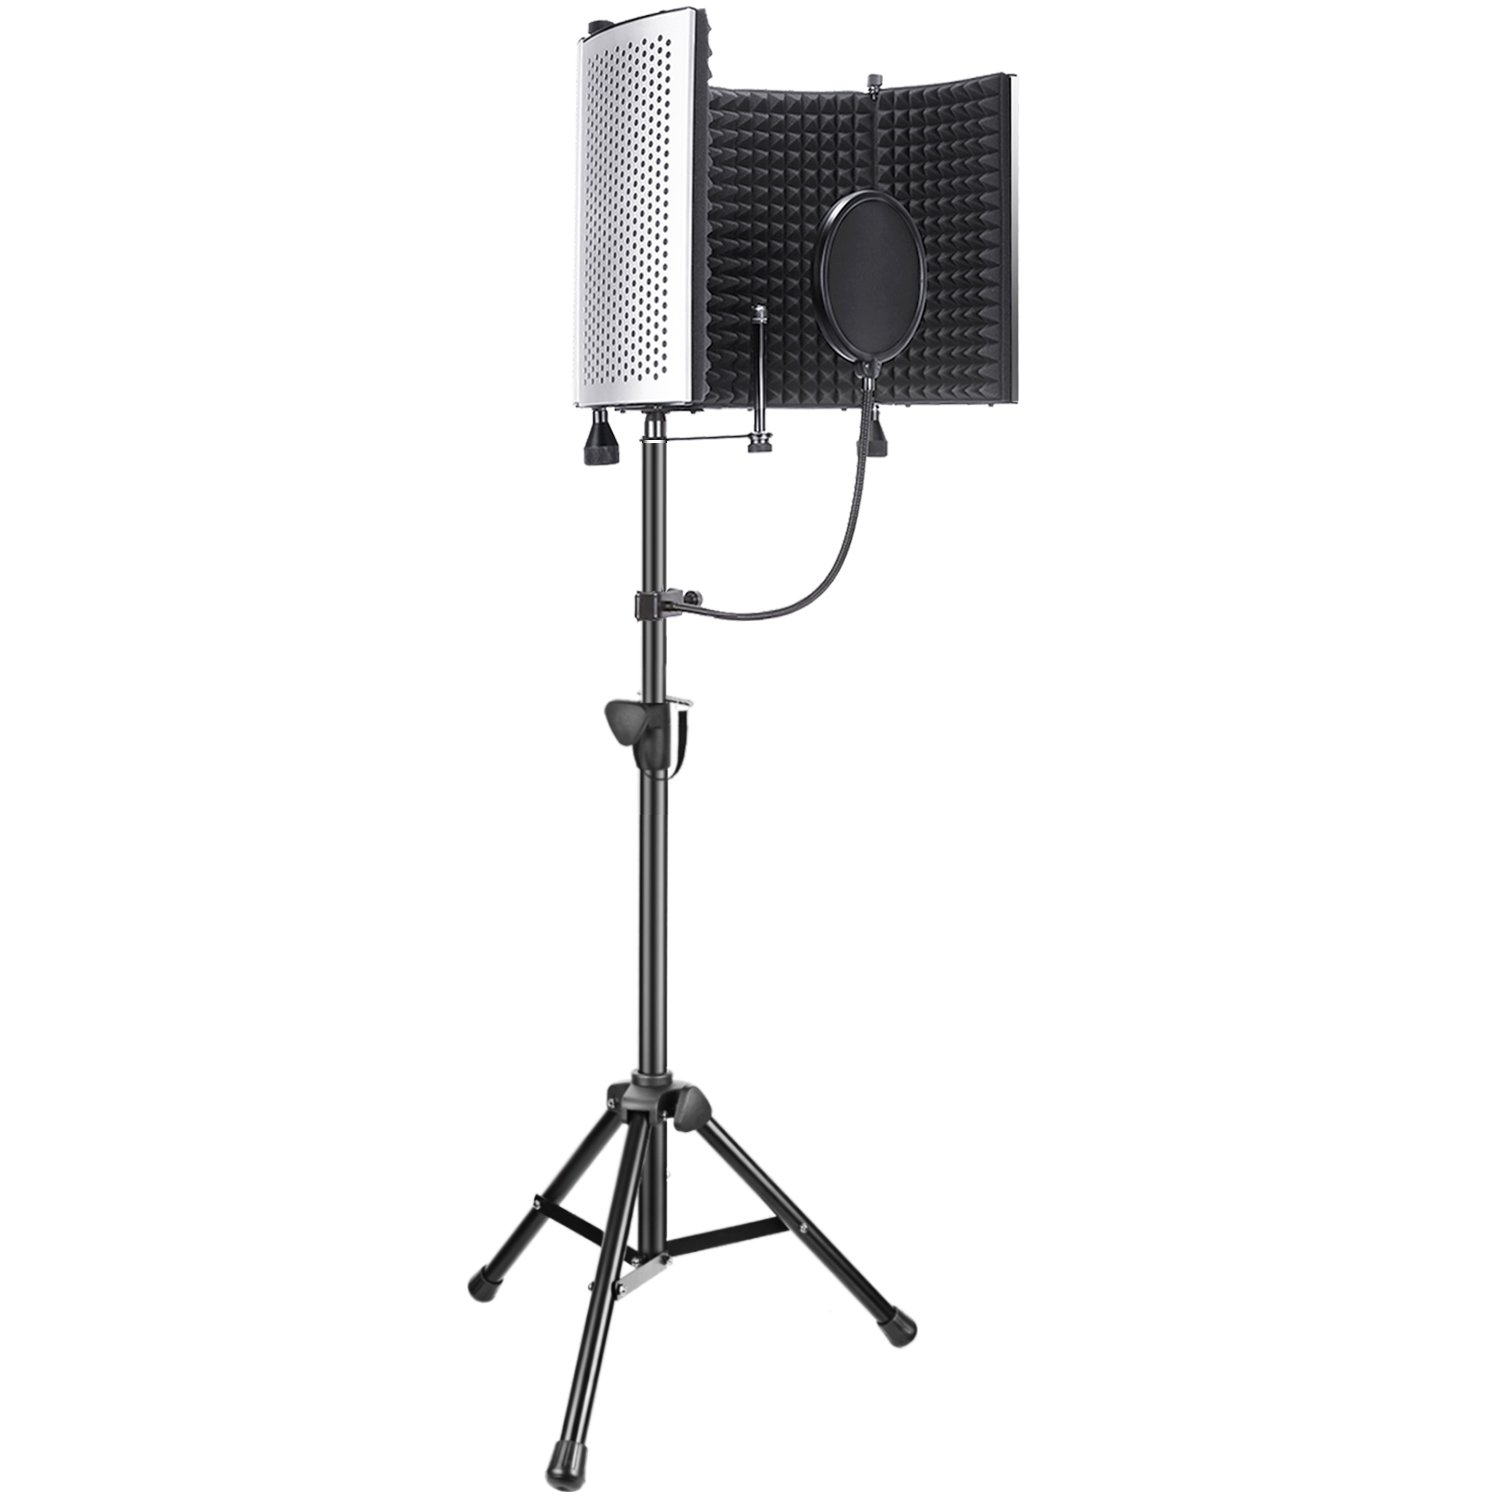 Neewer Professional Microphone Studio Recording Accessories Include: NW-5 Microphone Isolation Panel, Adjustable Wind Screen Bracket Stand and Pop Filter for Vocal Acoustic Recording and Podcasting by Neewer